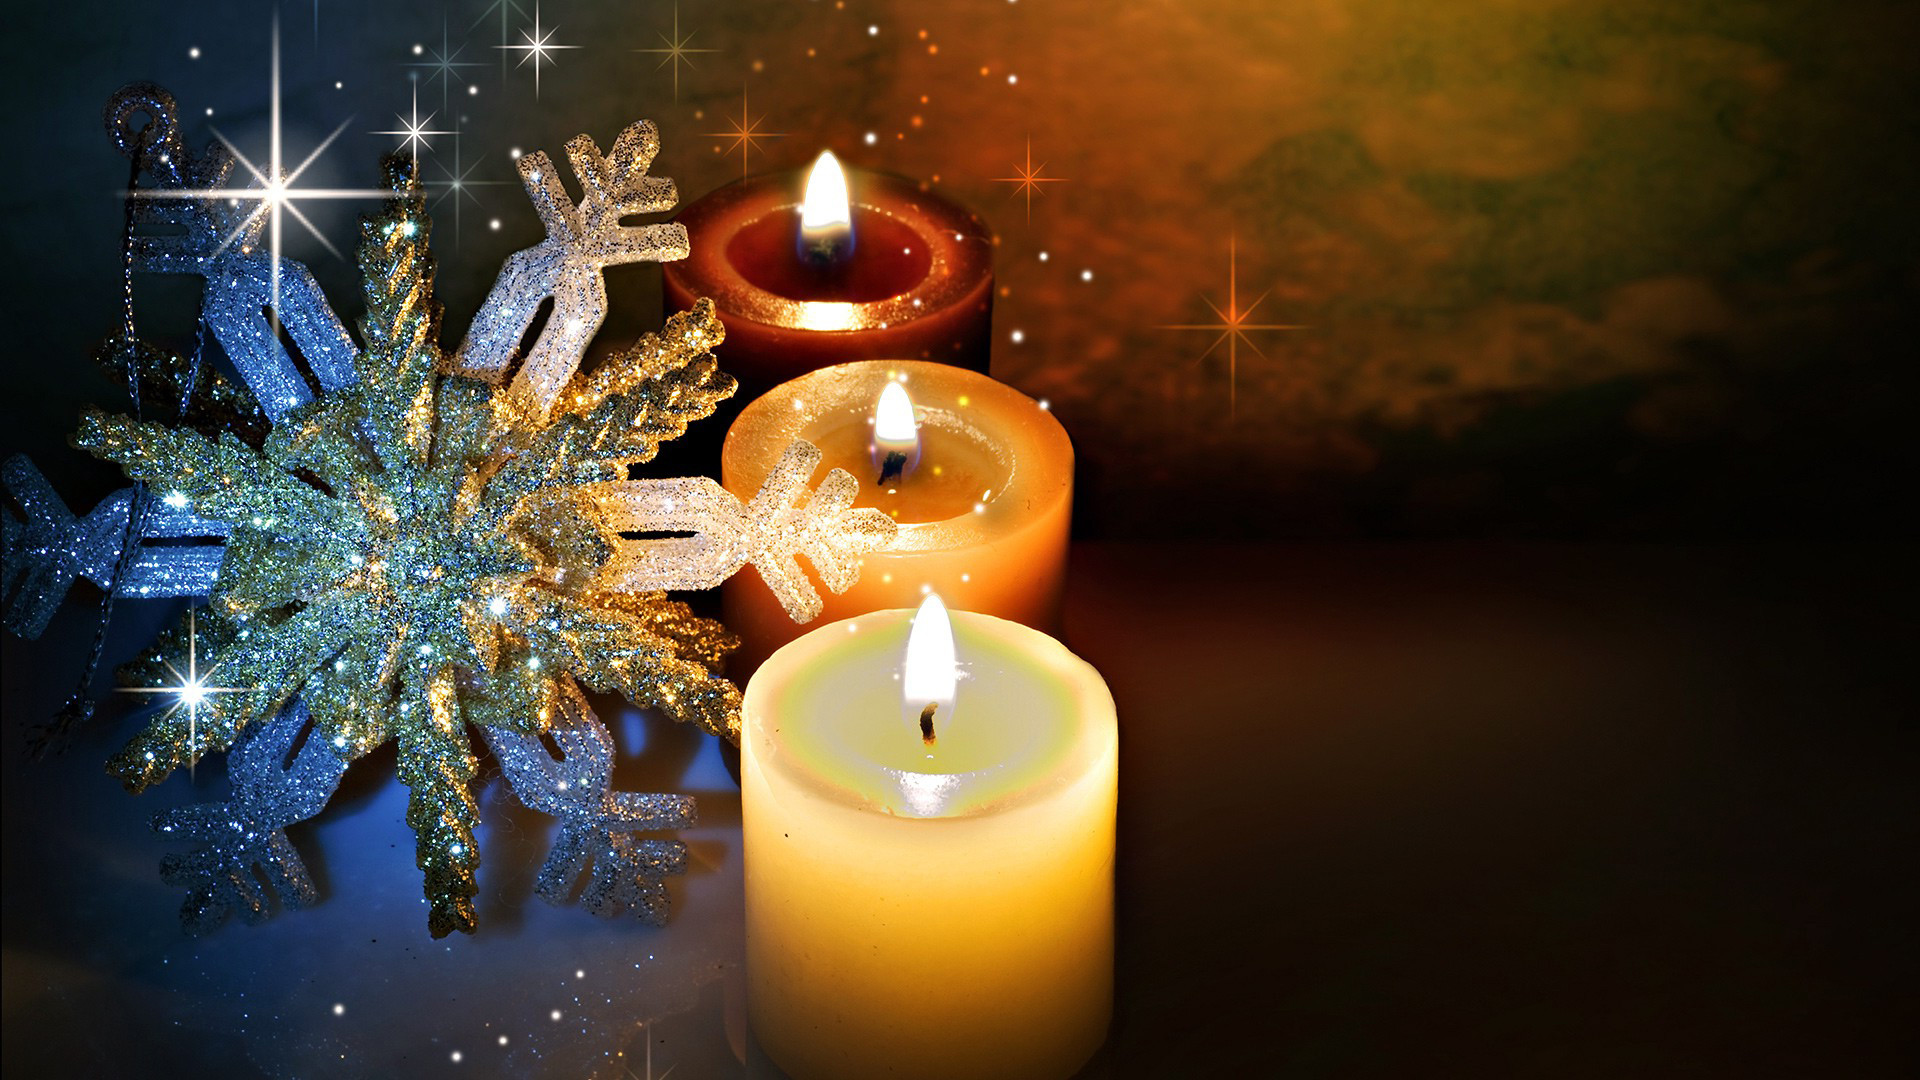 candle light wallpapers free download